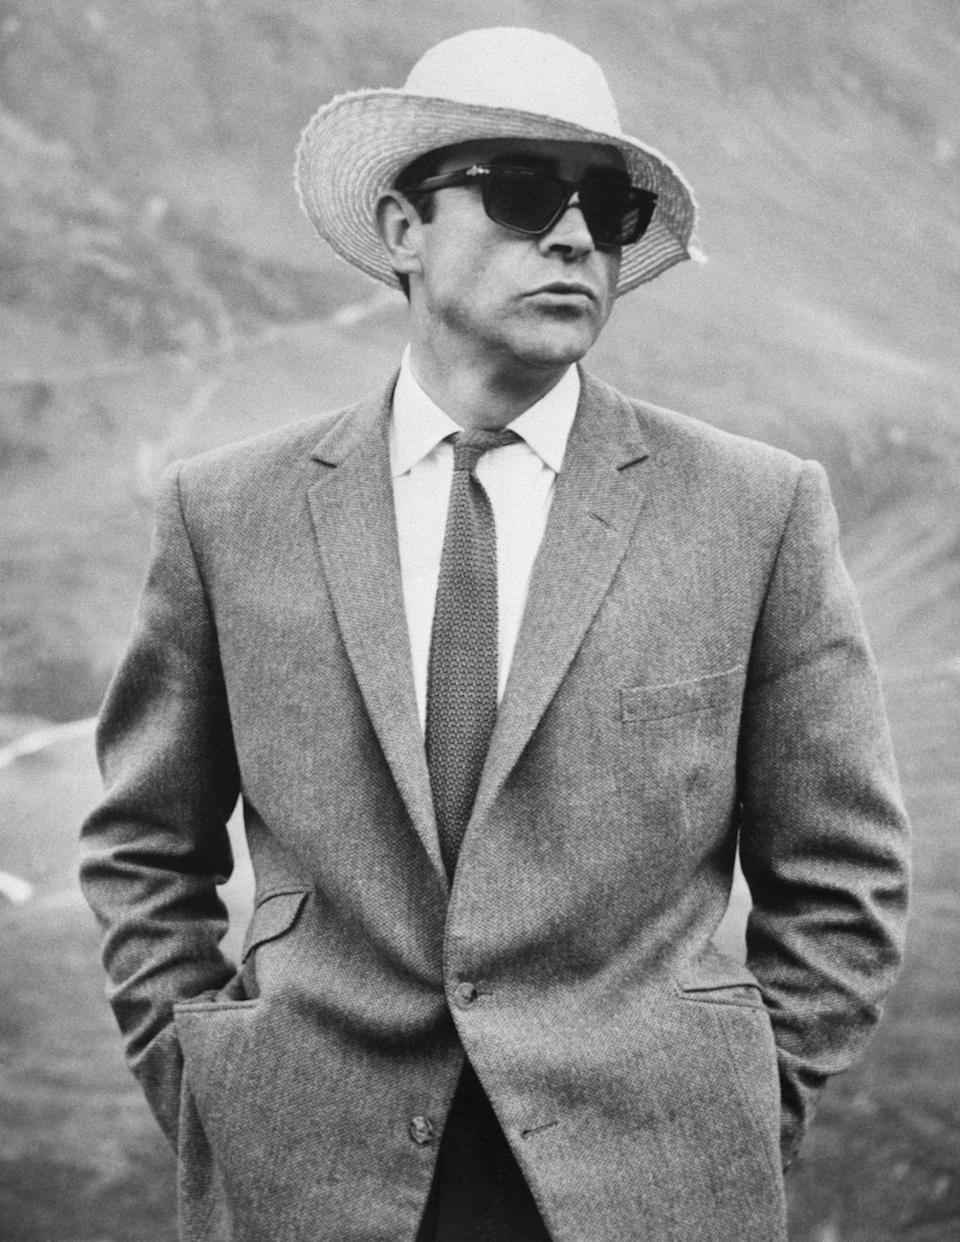 <p>Sean Connery relaxing between scenes on the 'Goldfinger', 1964 set wearing sunglasses and sun hat. </p>